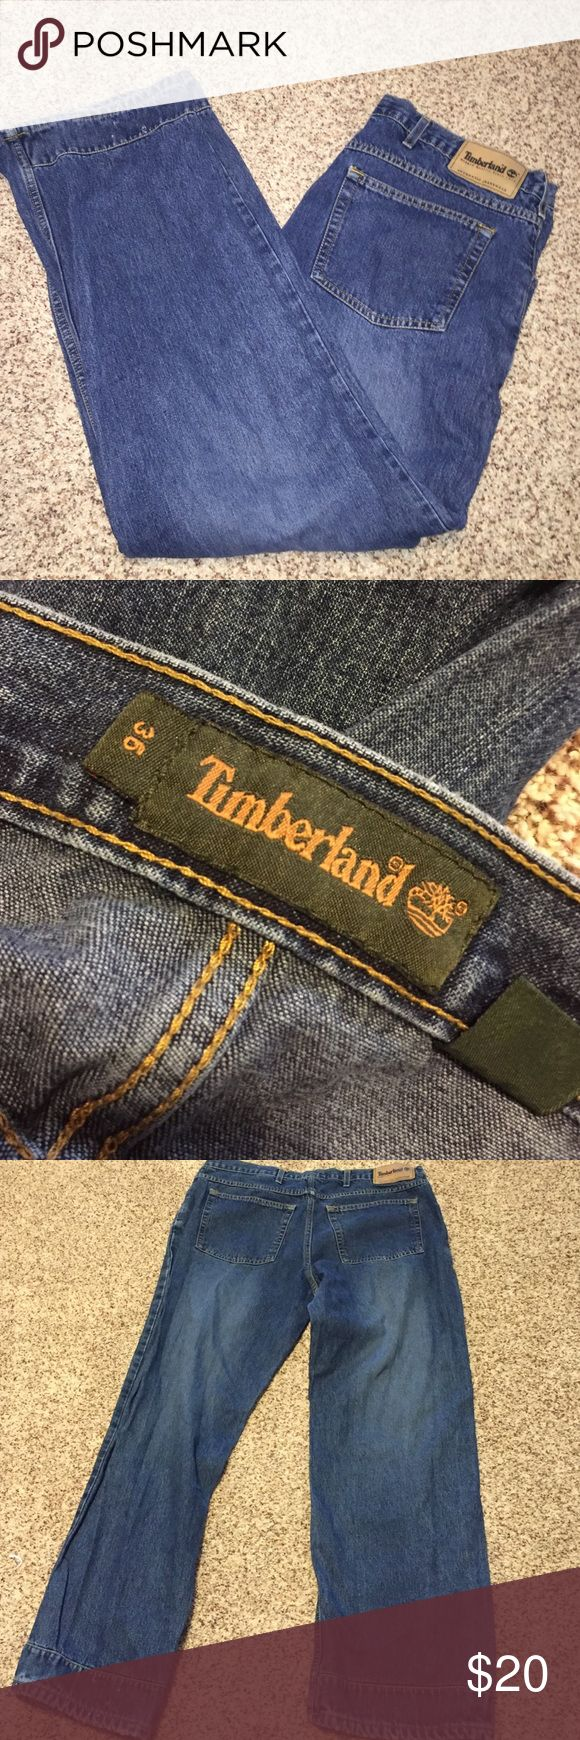 "Timberland jeans 36x30 Easy care 100% cotton inseam is approx 30 1/2"" pre owned in good condition no stains only flaw is small holes in bottom back left cuff please see last photo. Timberland Jeans"